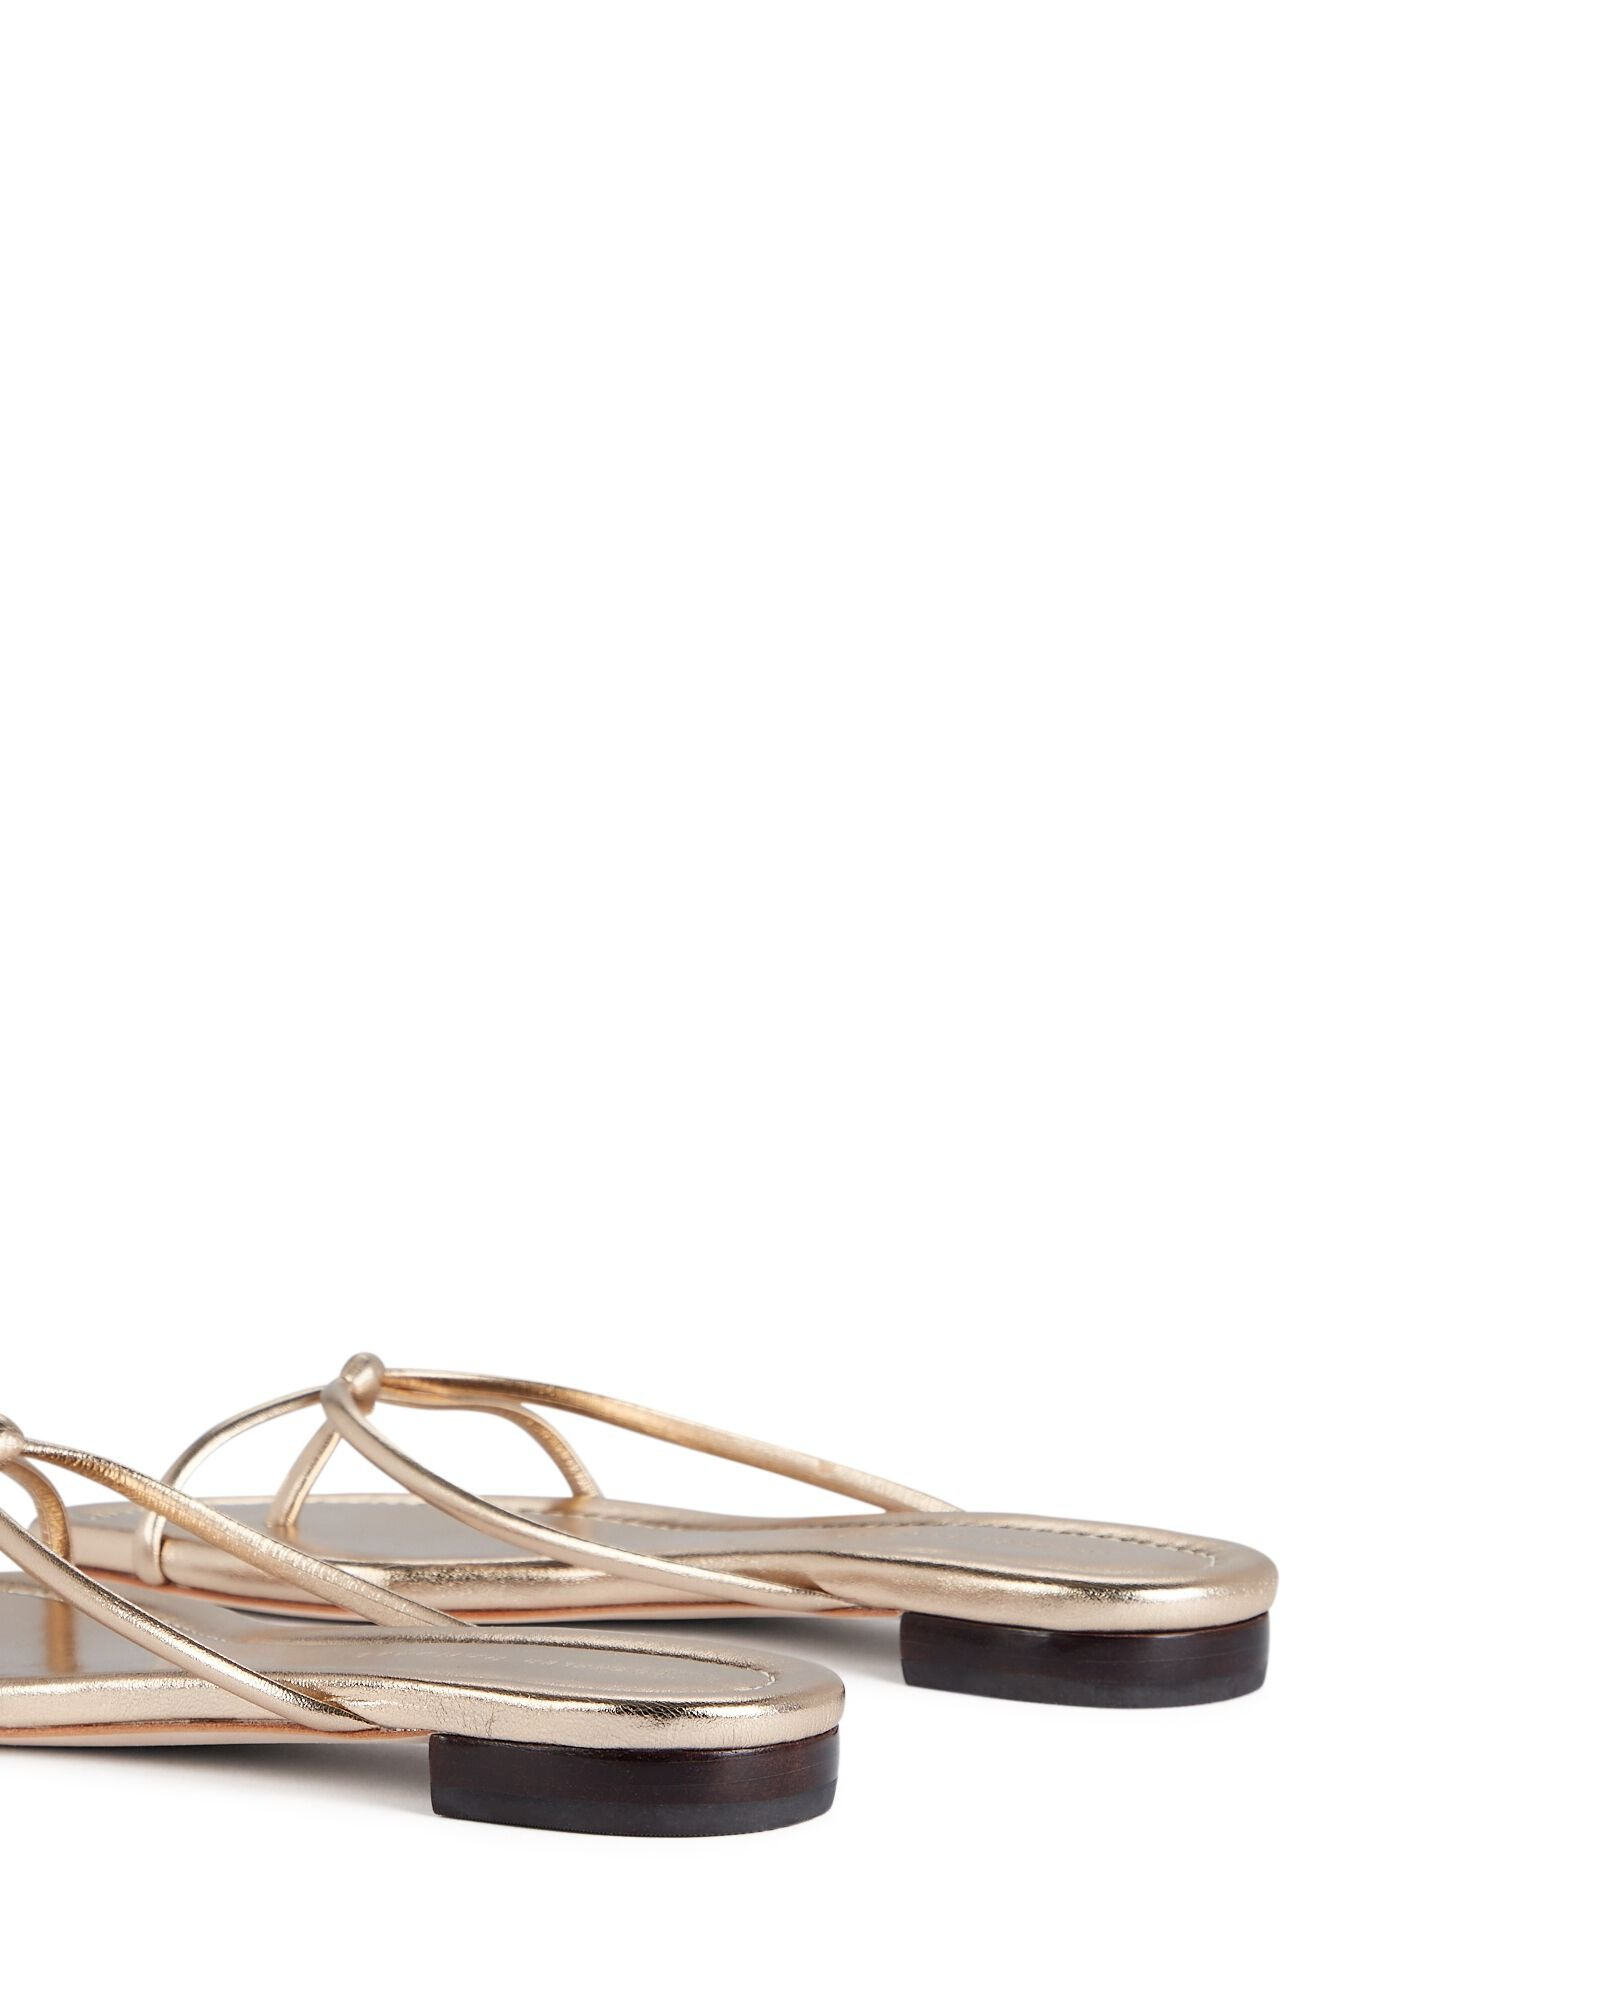 Liv Knotted Leather Sandals, GOLD, hi-res